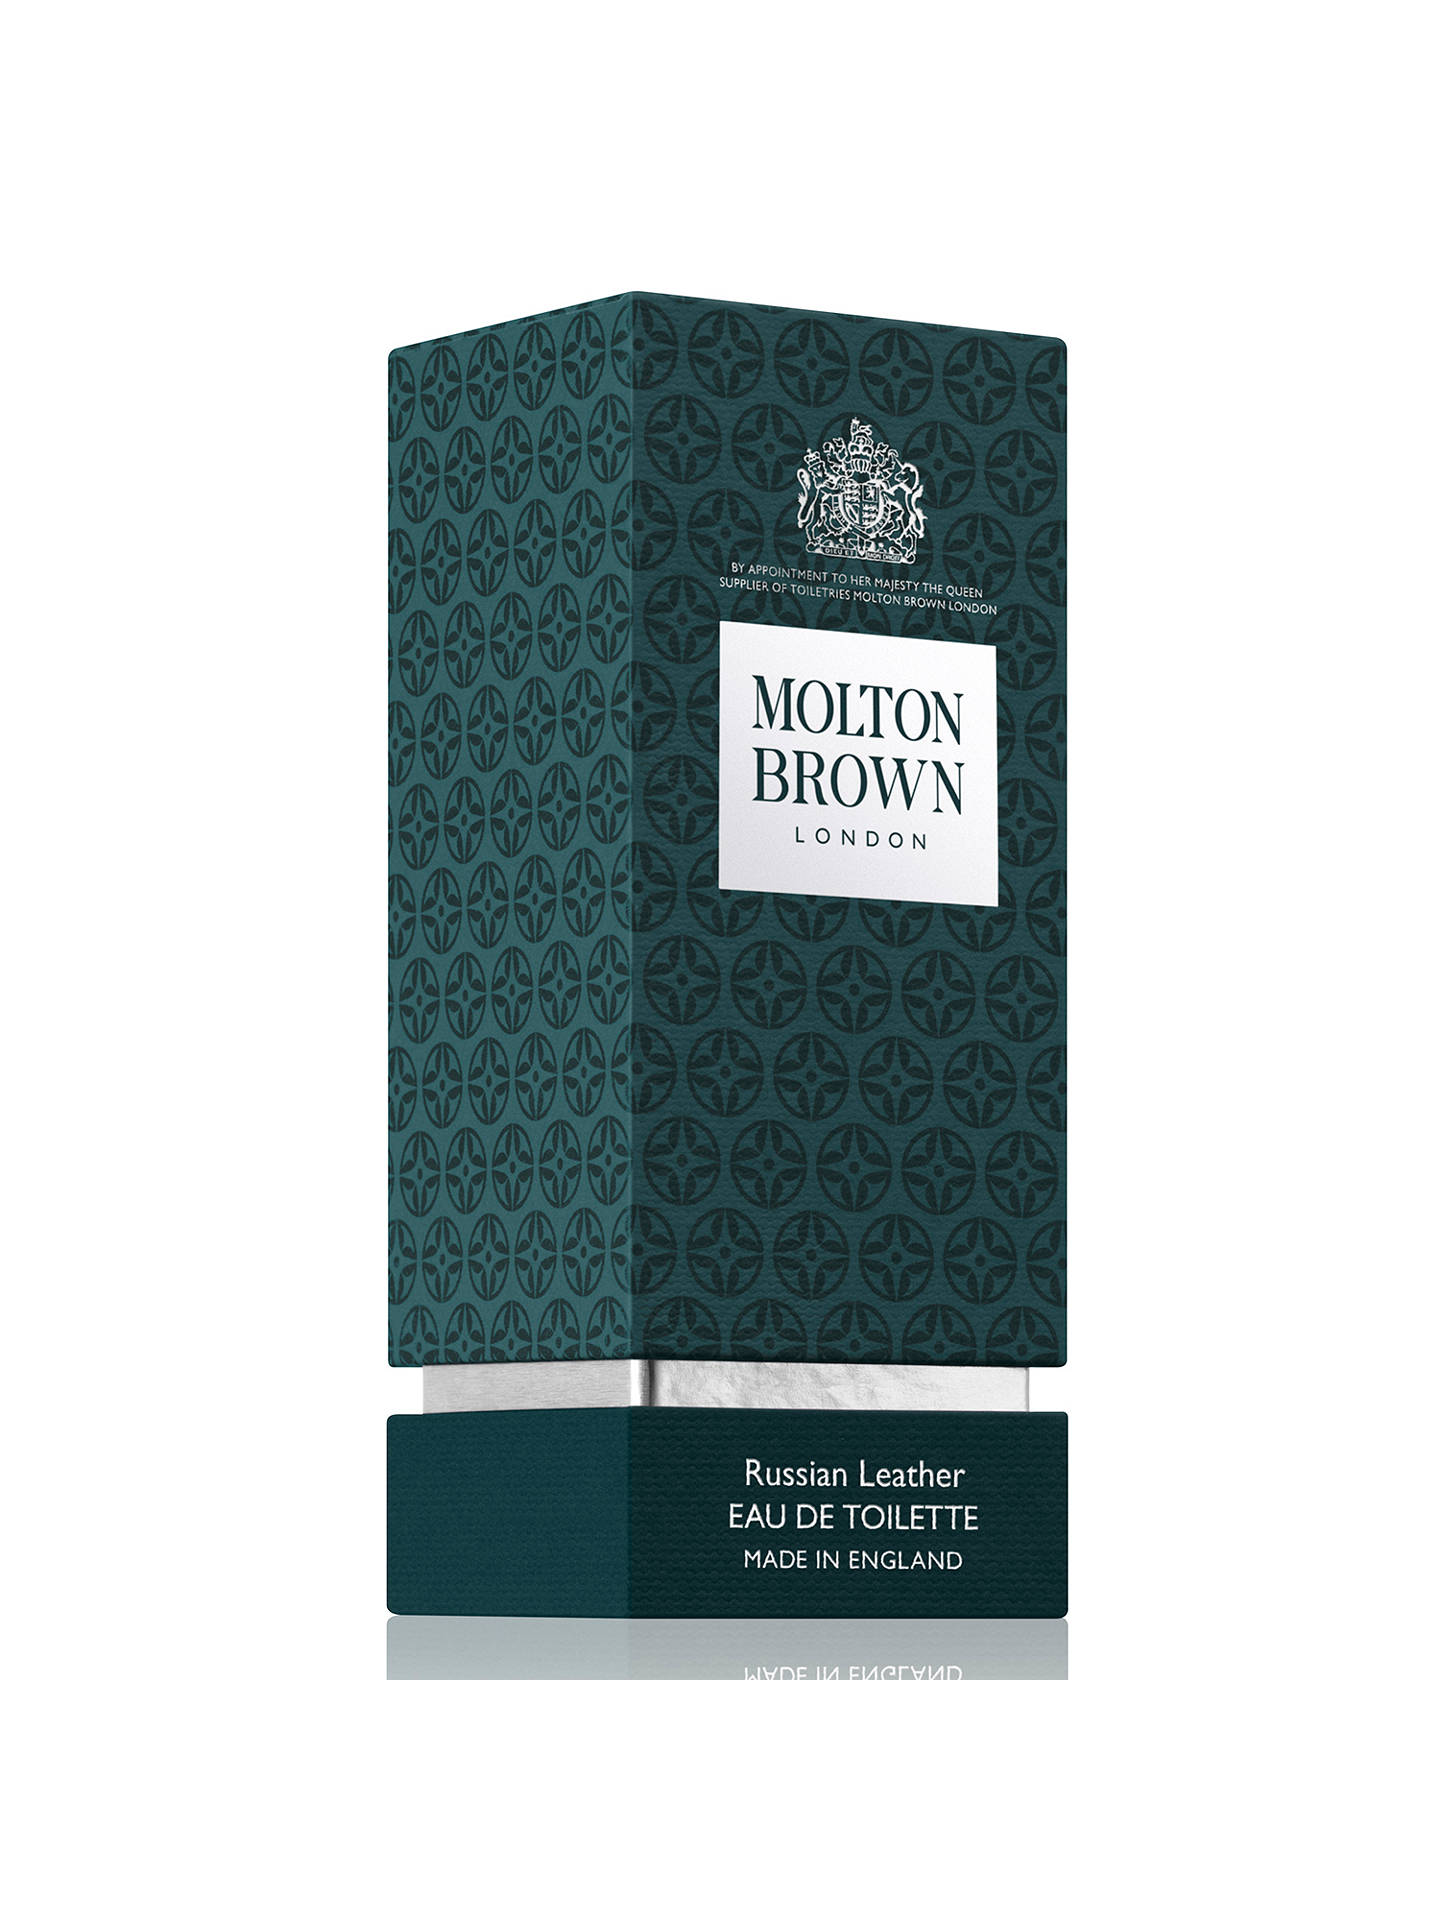 BuyMolton Brown Russian Leather Eau de Toilette, 50ml Online at johnlewis.com